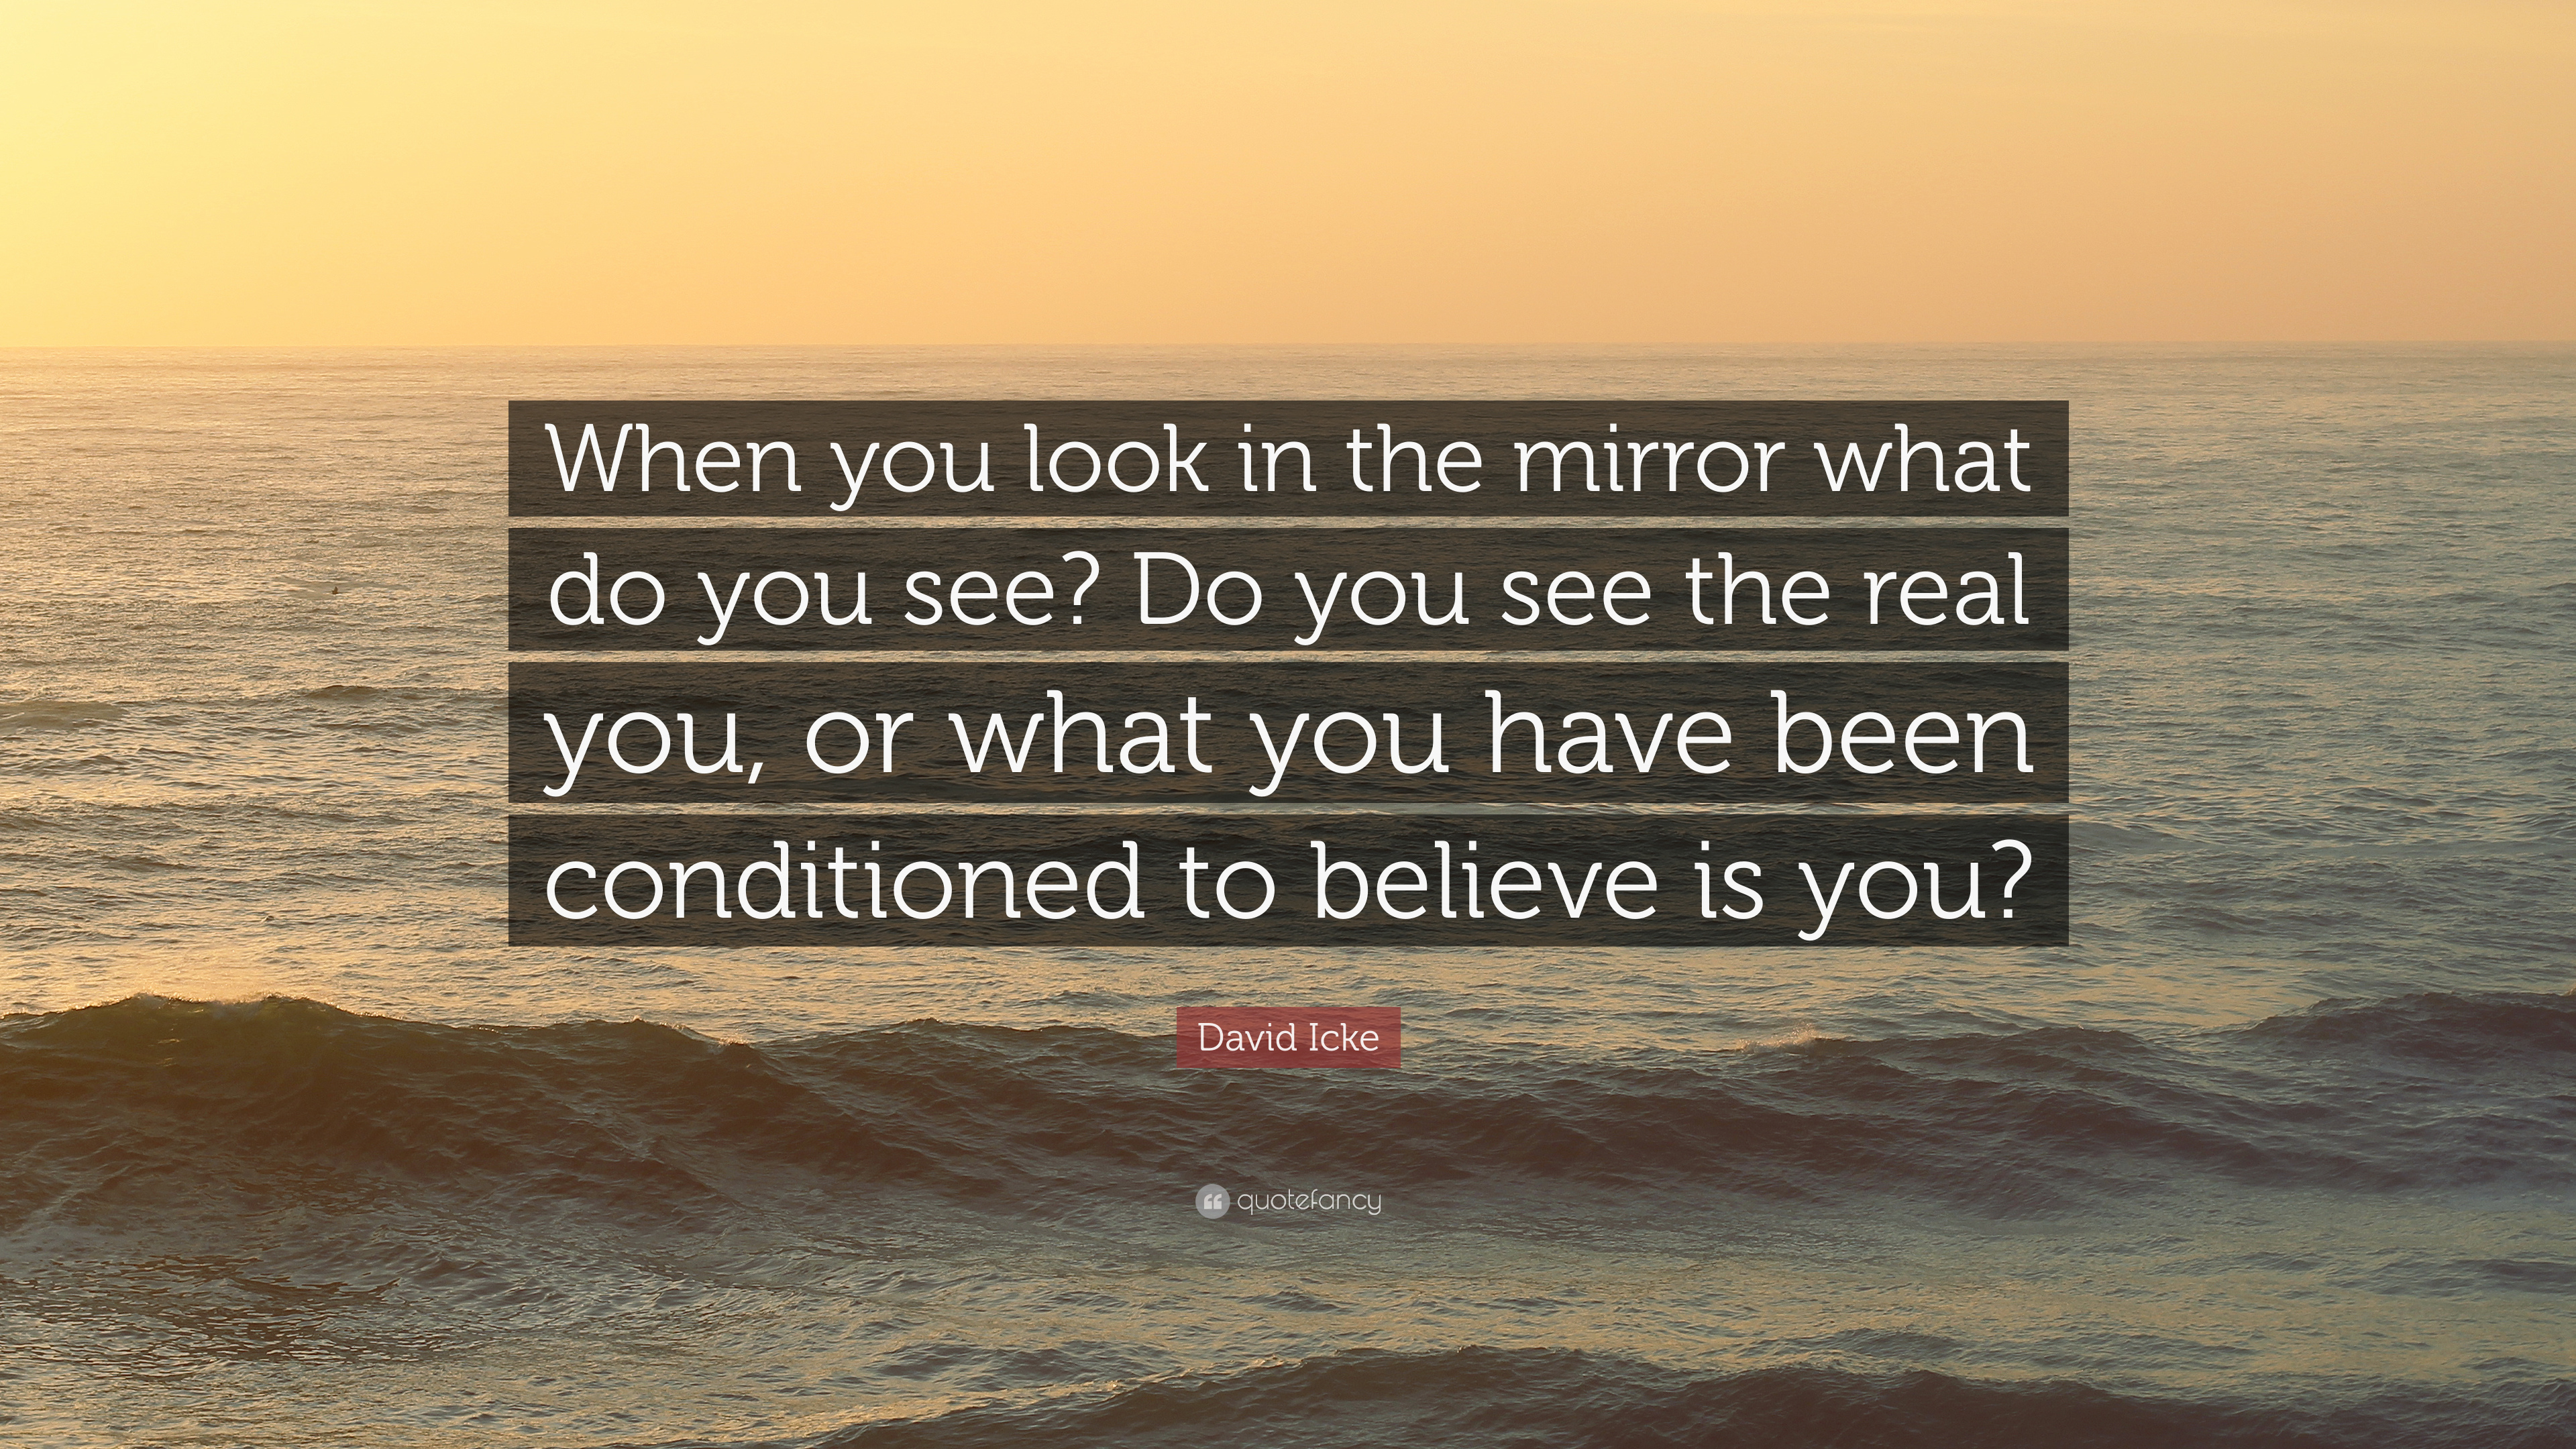 David Icke Quote When You Look In The Mirror What Do You See Do